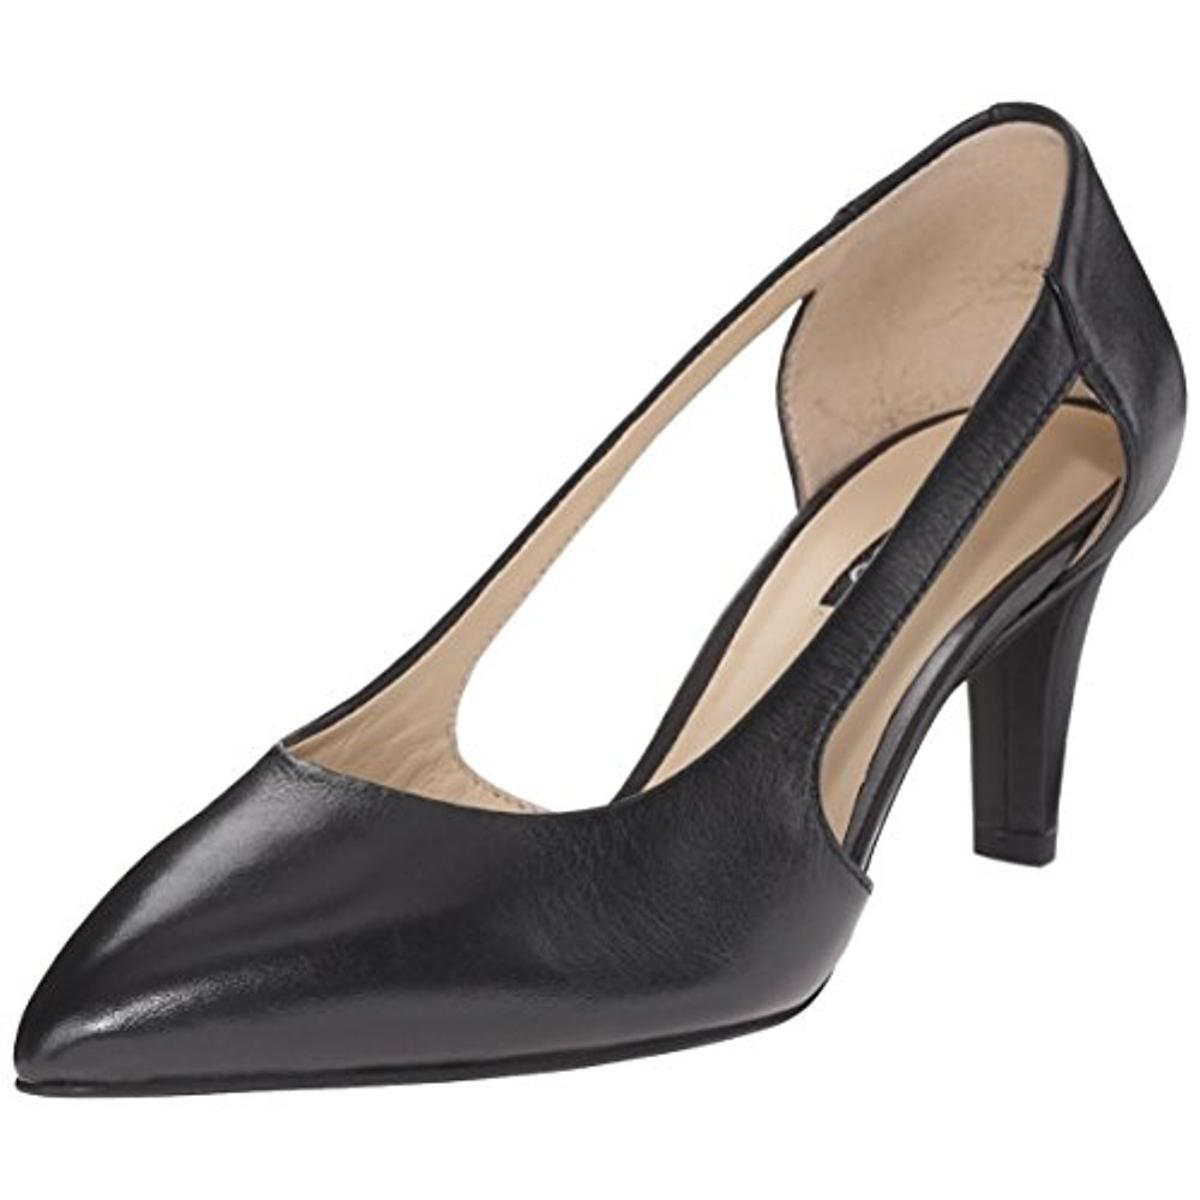 ECCO Womens Belleair Leather D'Orsay Pumps by Ecco